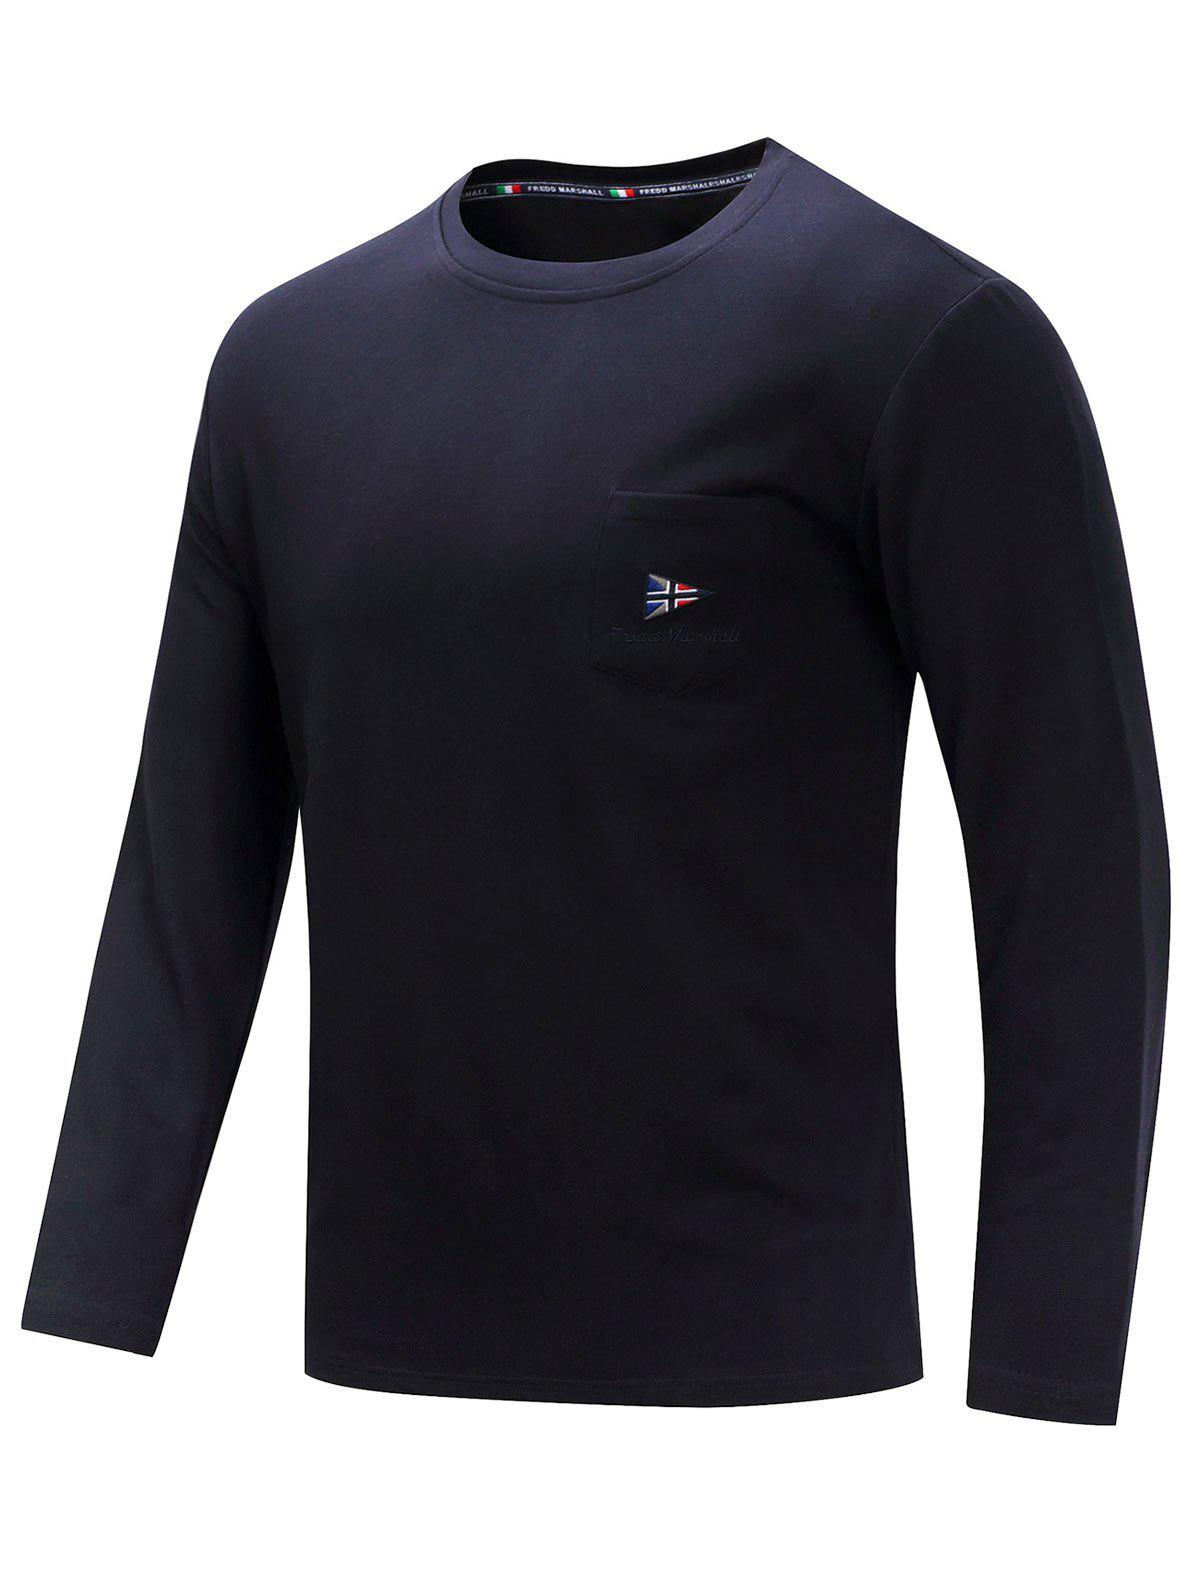 Casual Embroidery Chest Pocket Long Sleeve T-shirt - DEEP BLUE 2XL